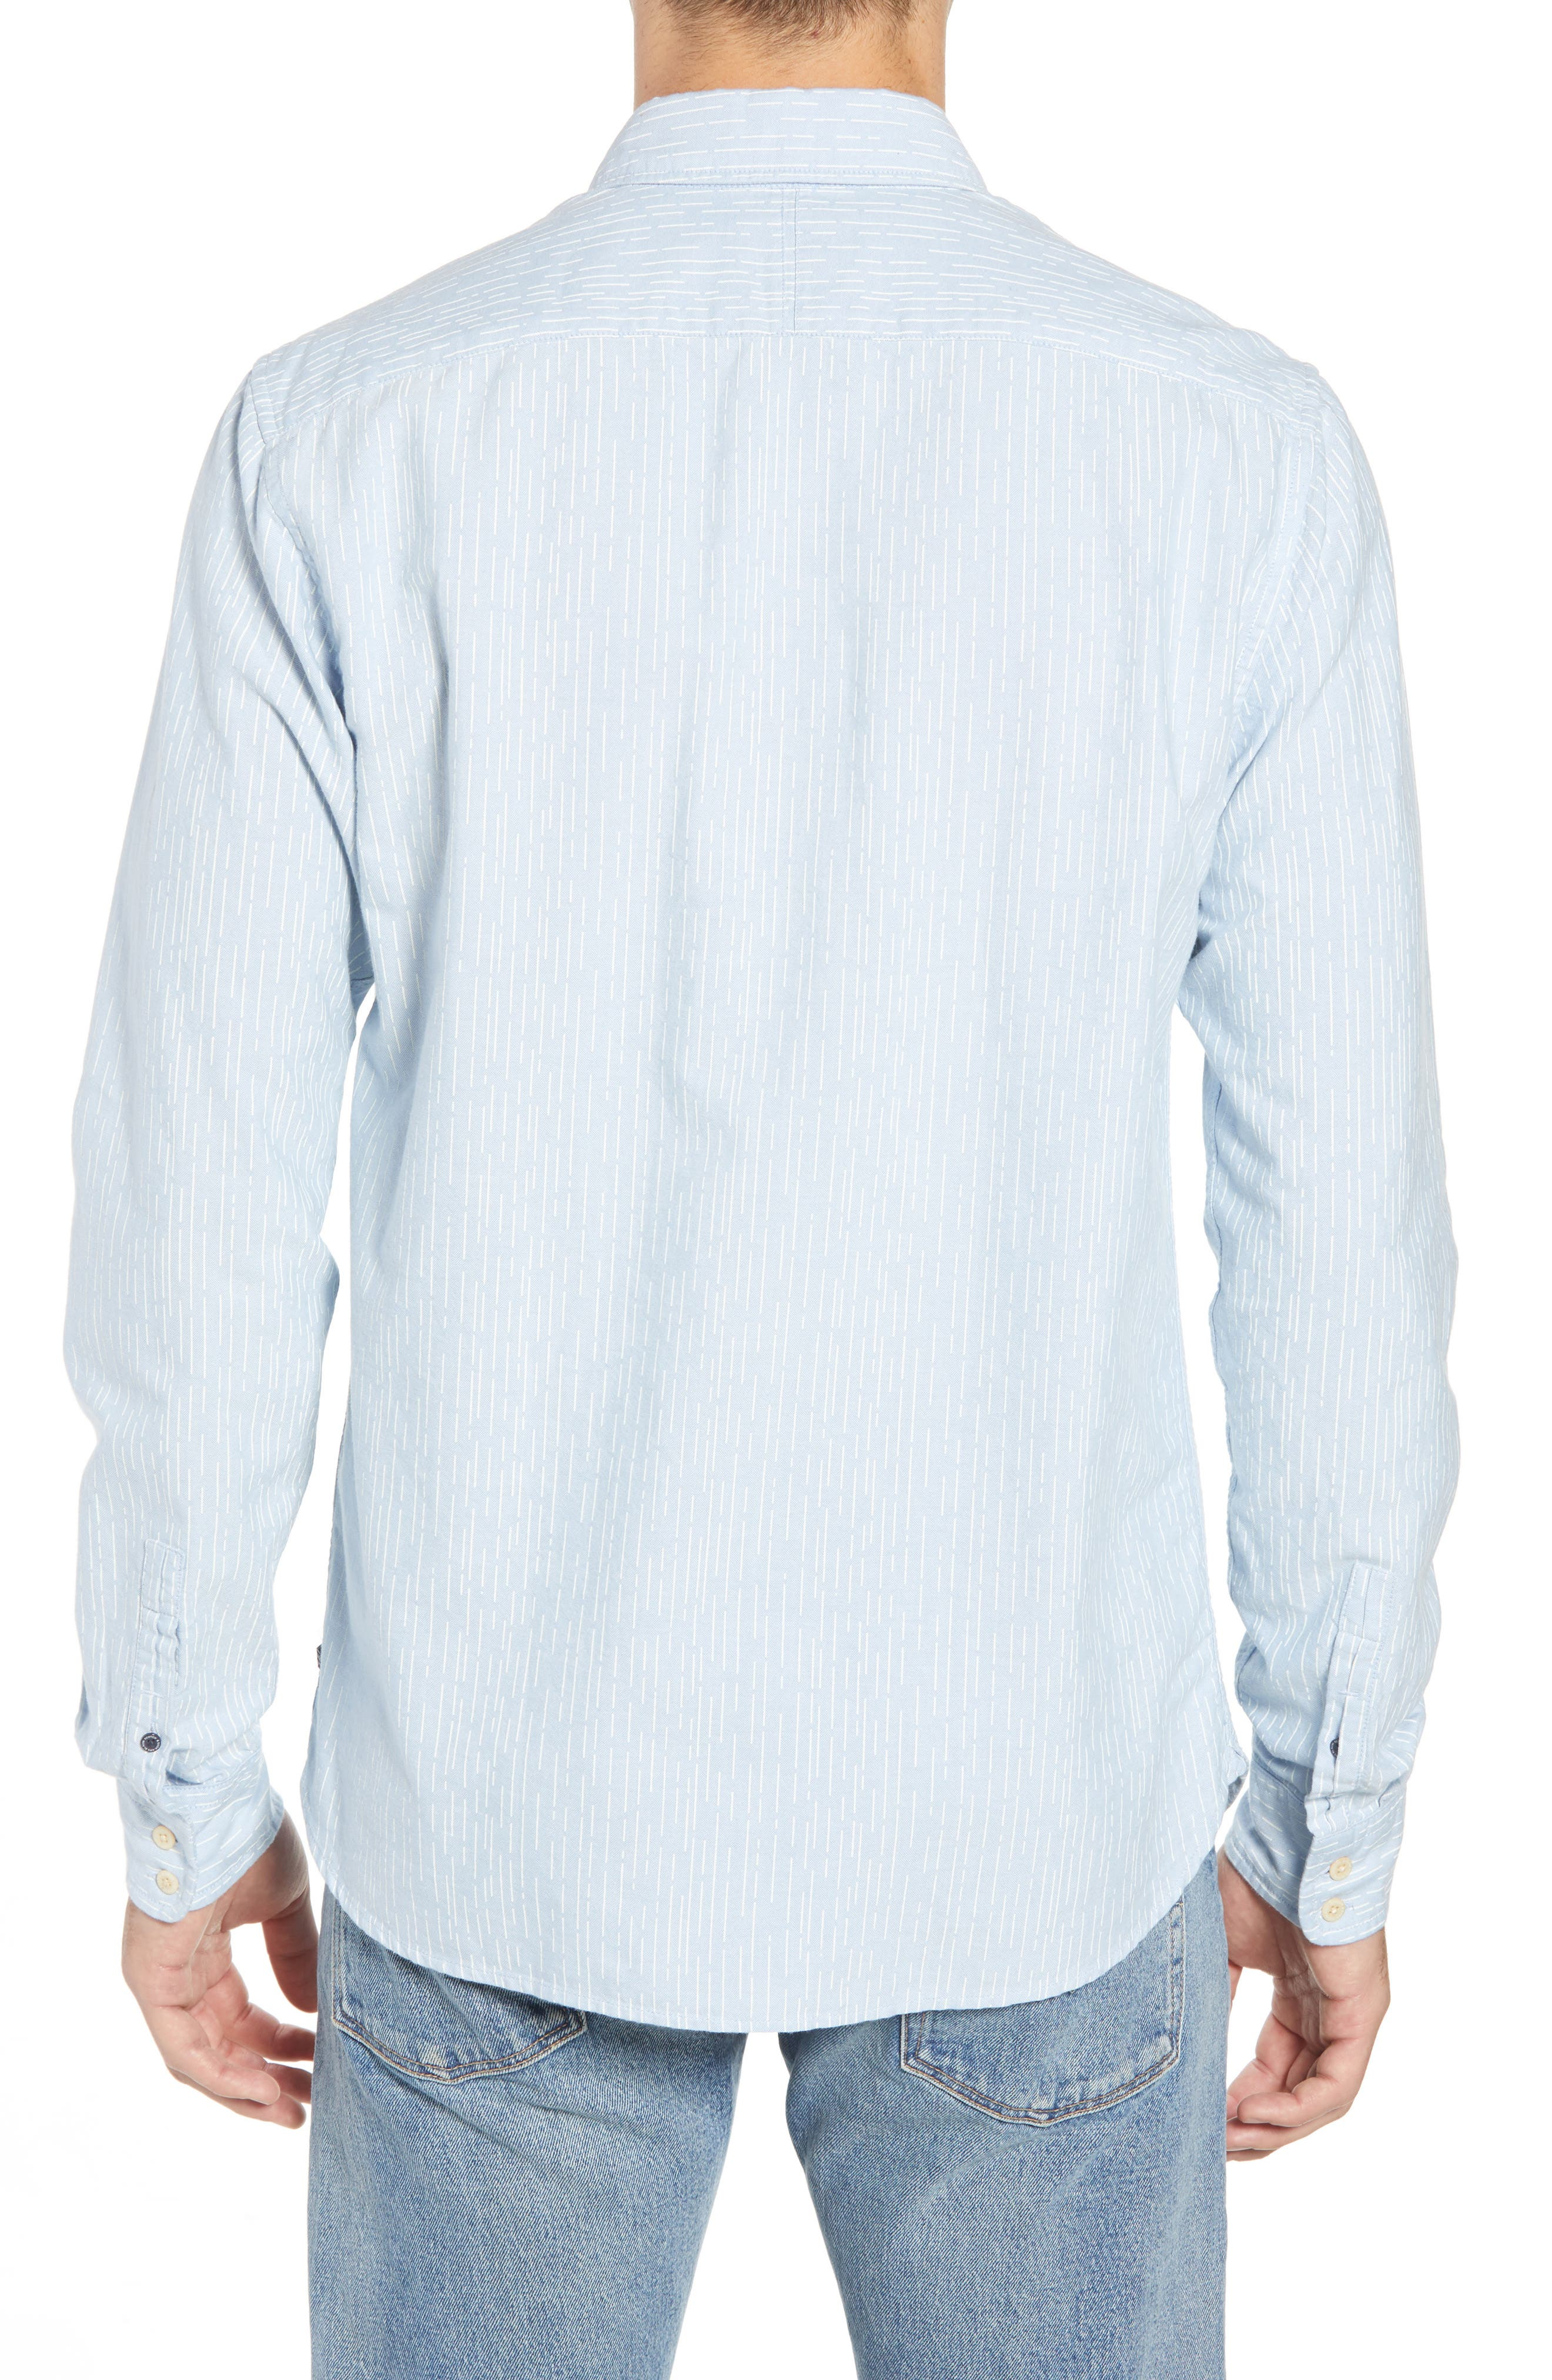 Amsterdams Blauw Striped Sport Shirt,                             Alternate thumbnail 2, color,                             420